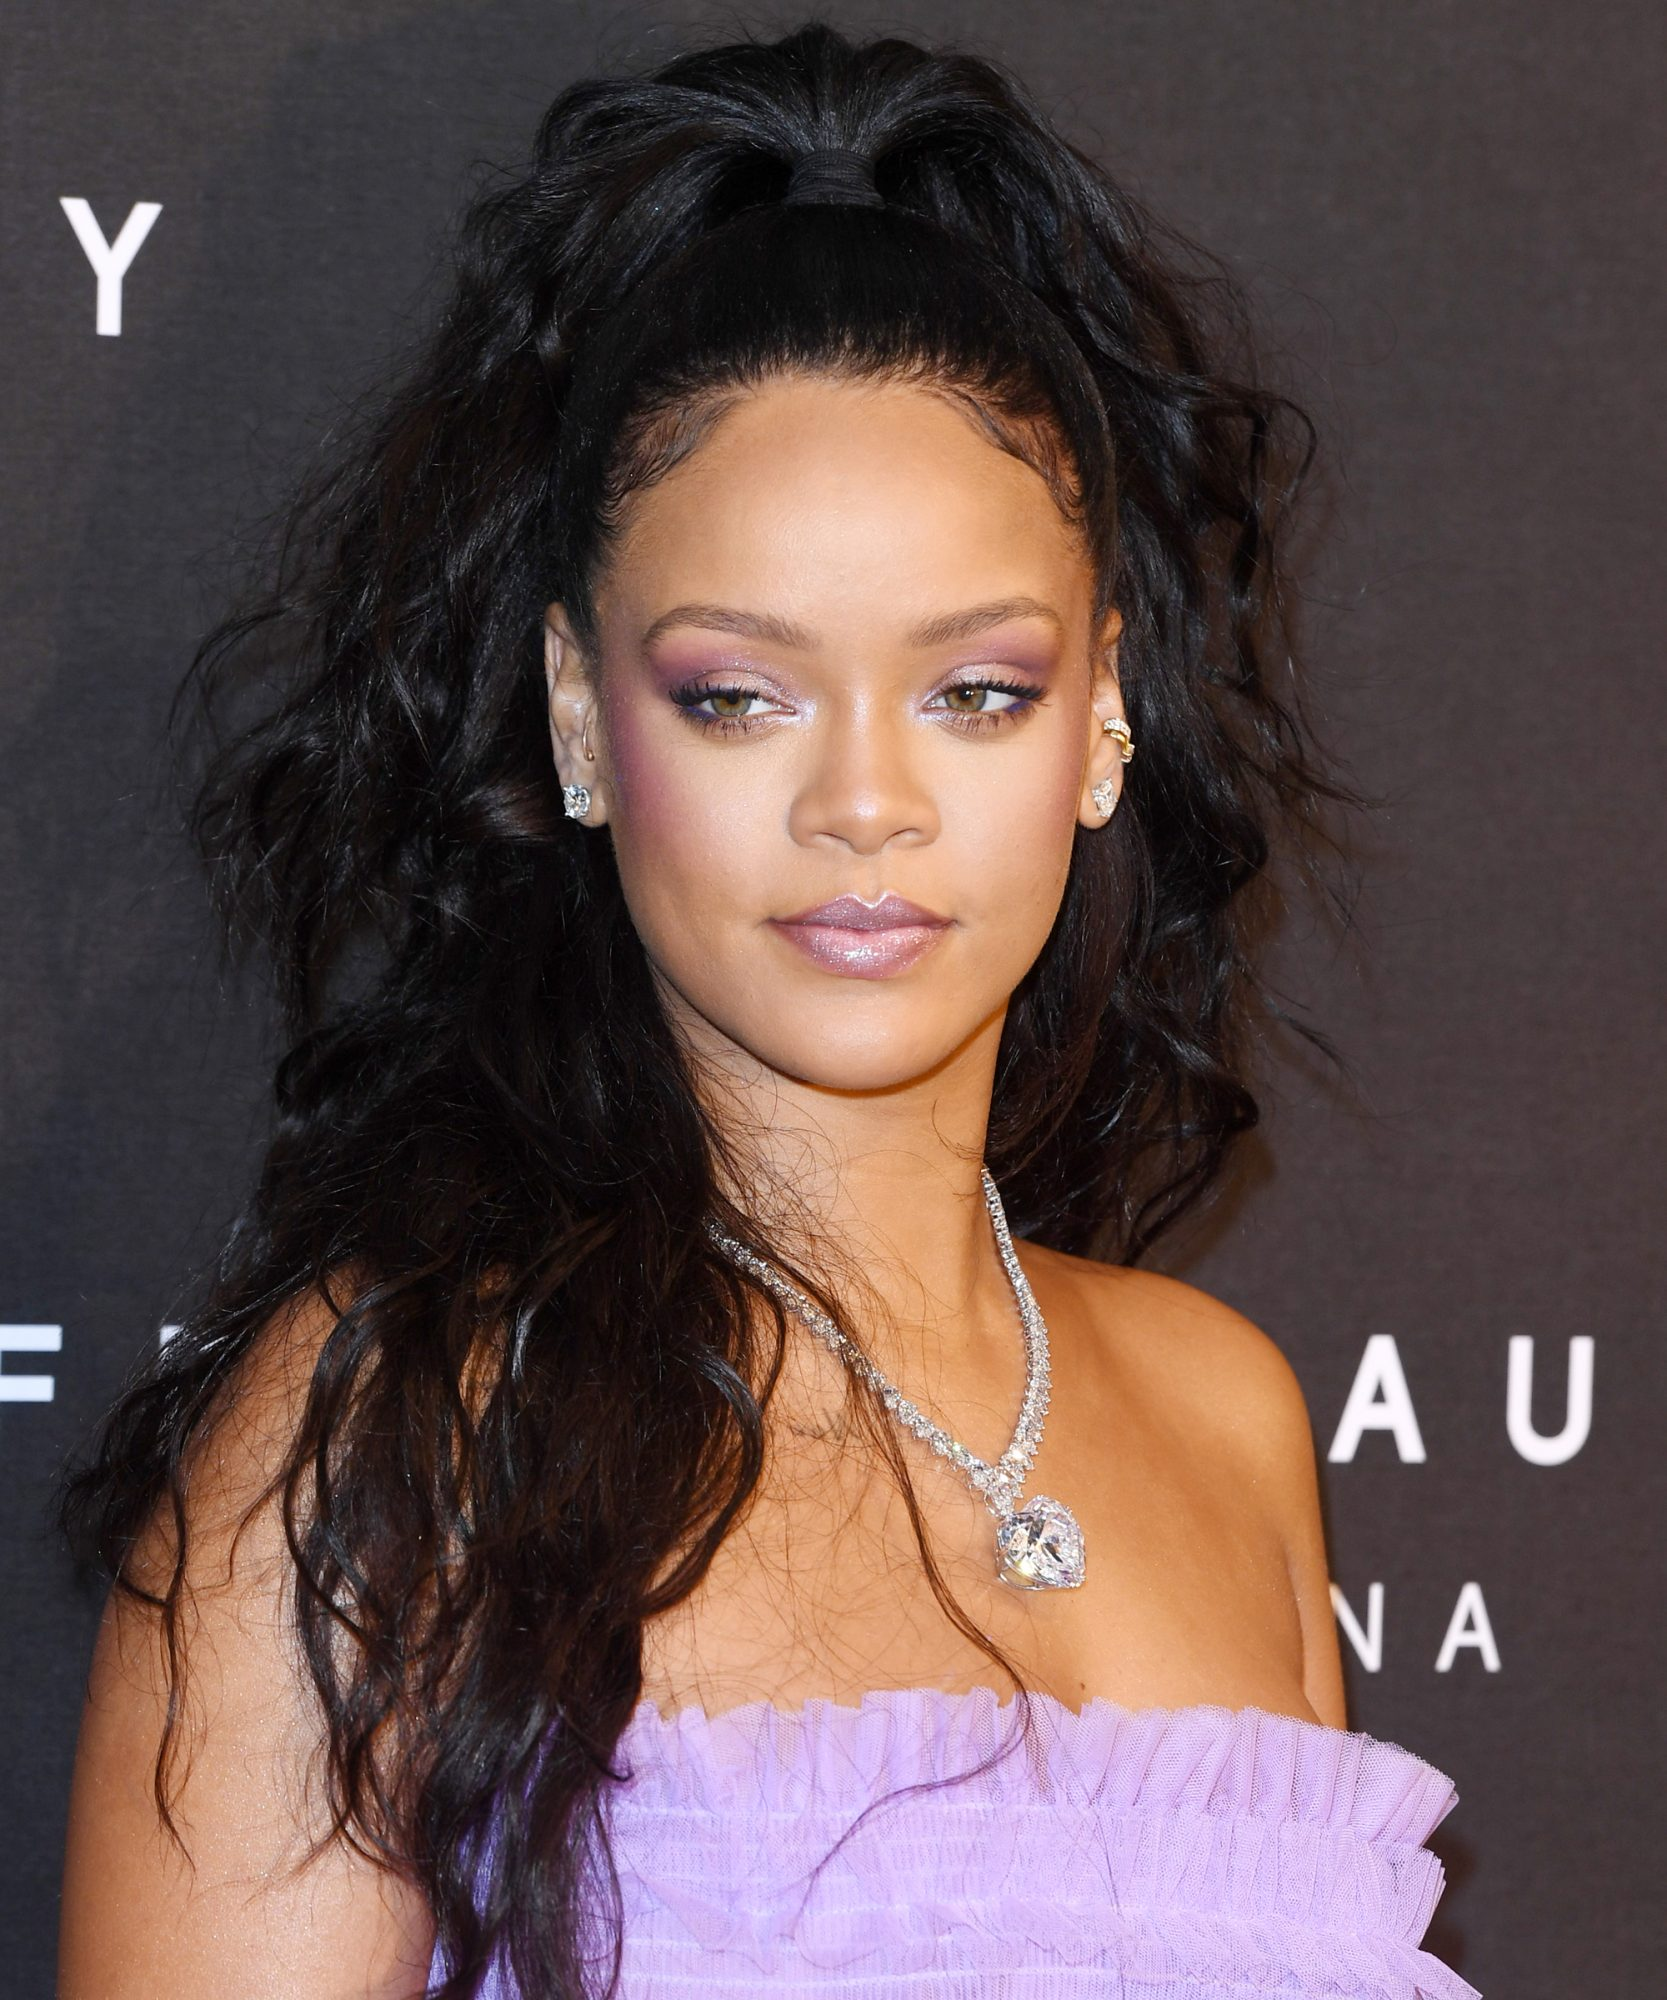 Rihanna's Half-Up Half-Down High Ponytail